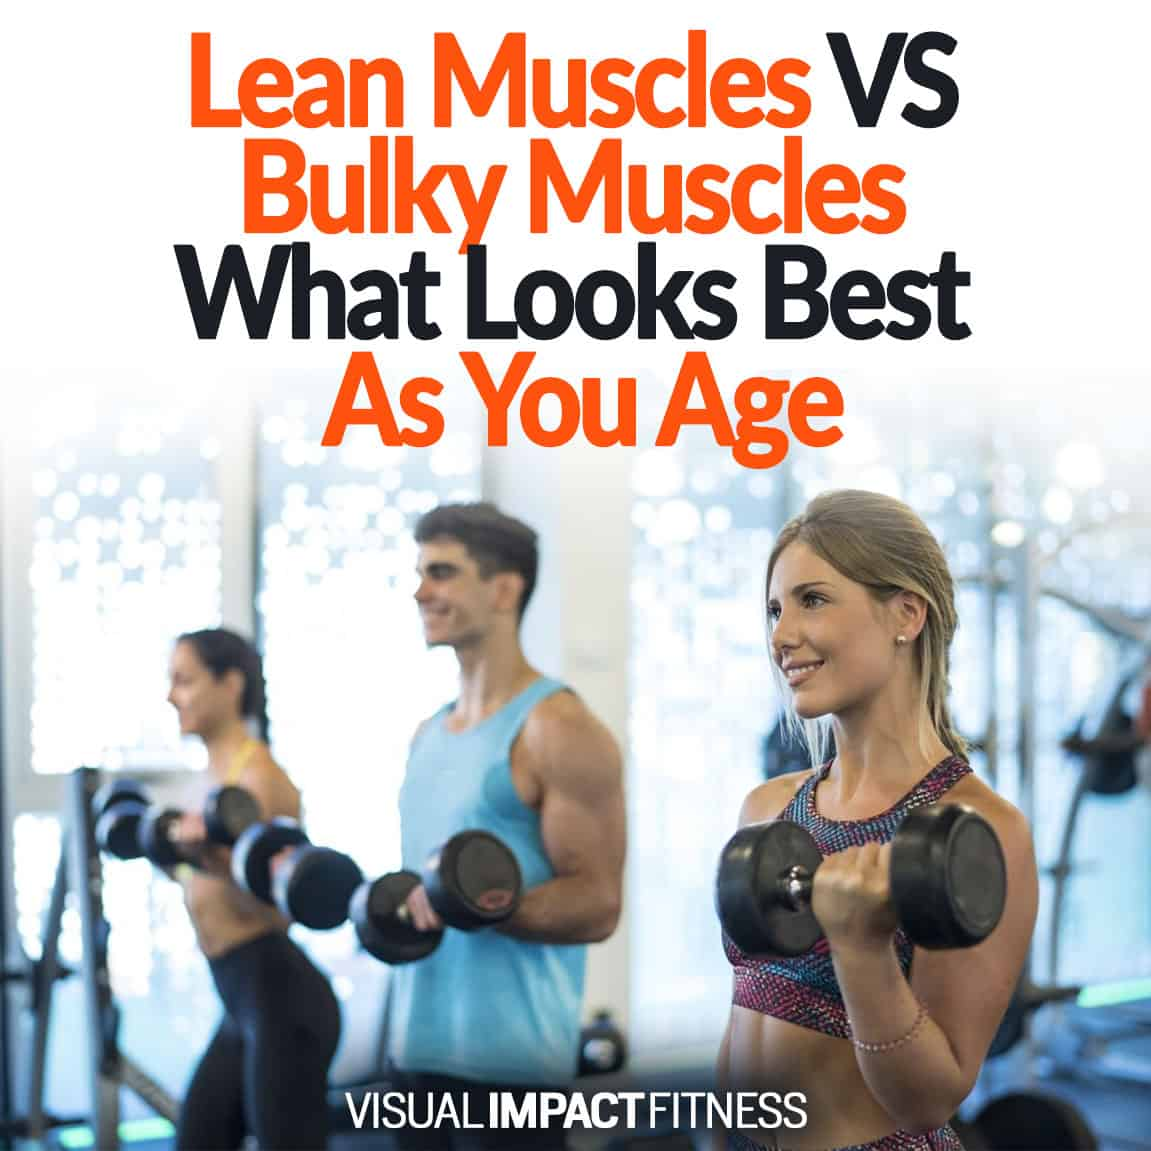 Lean Muscles VS Bulky Muscles: What Looks Best As You Age?